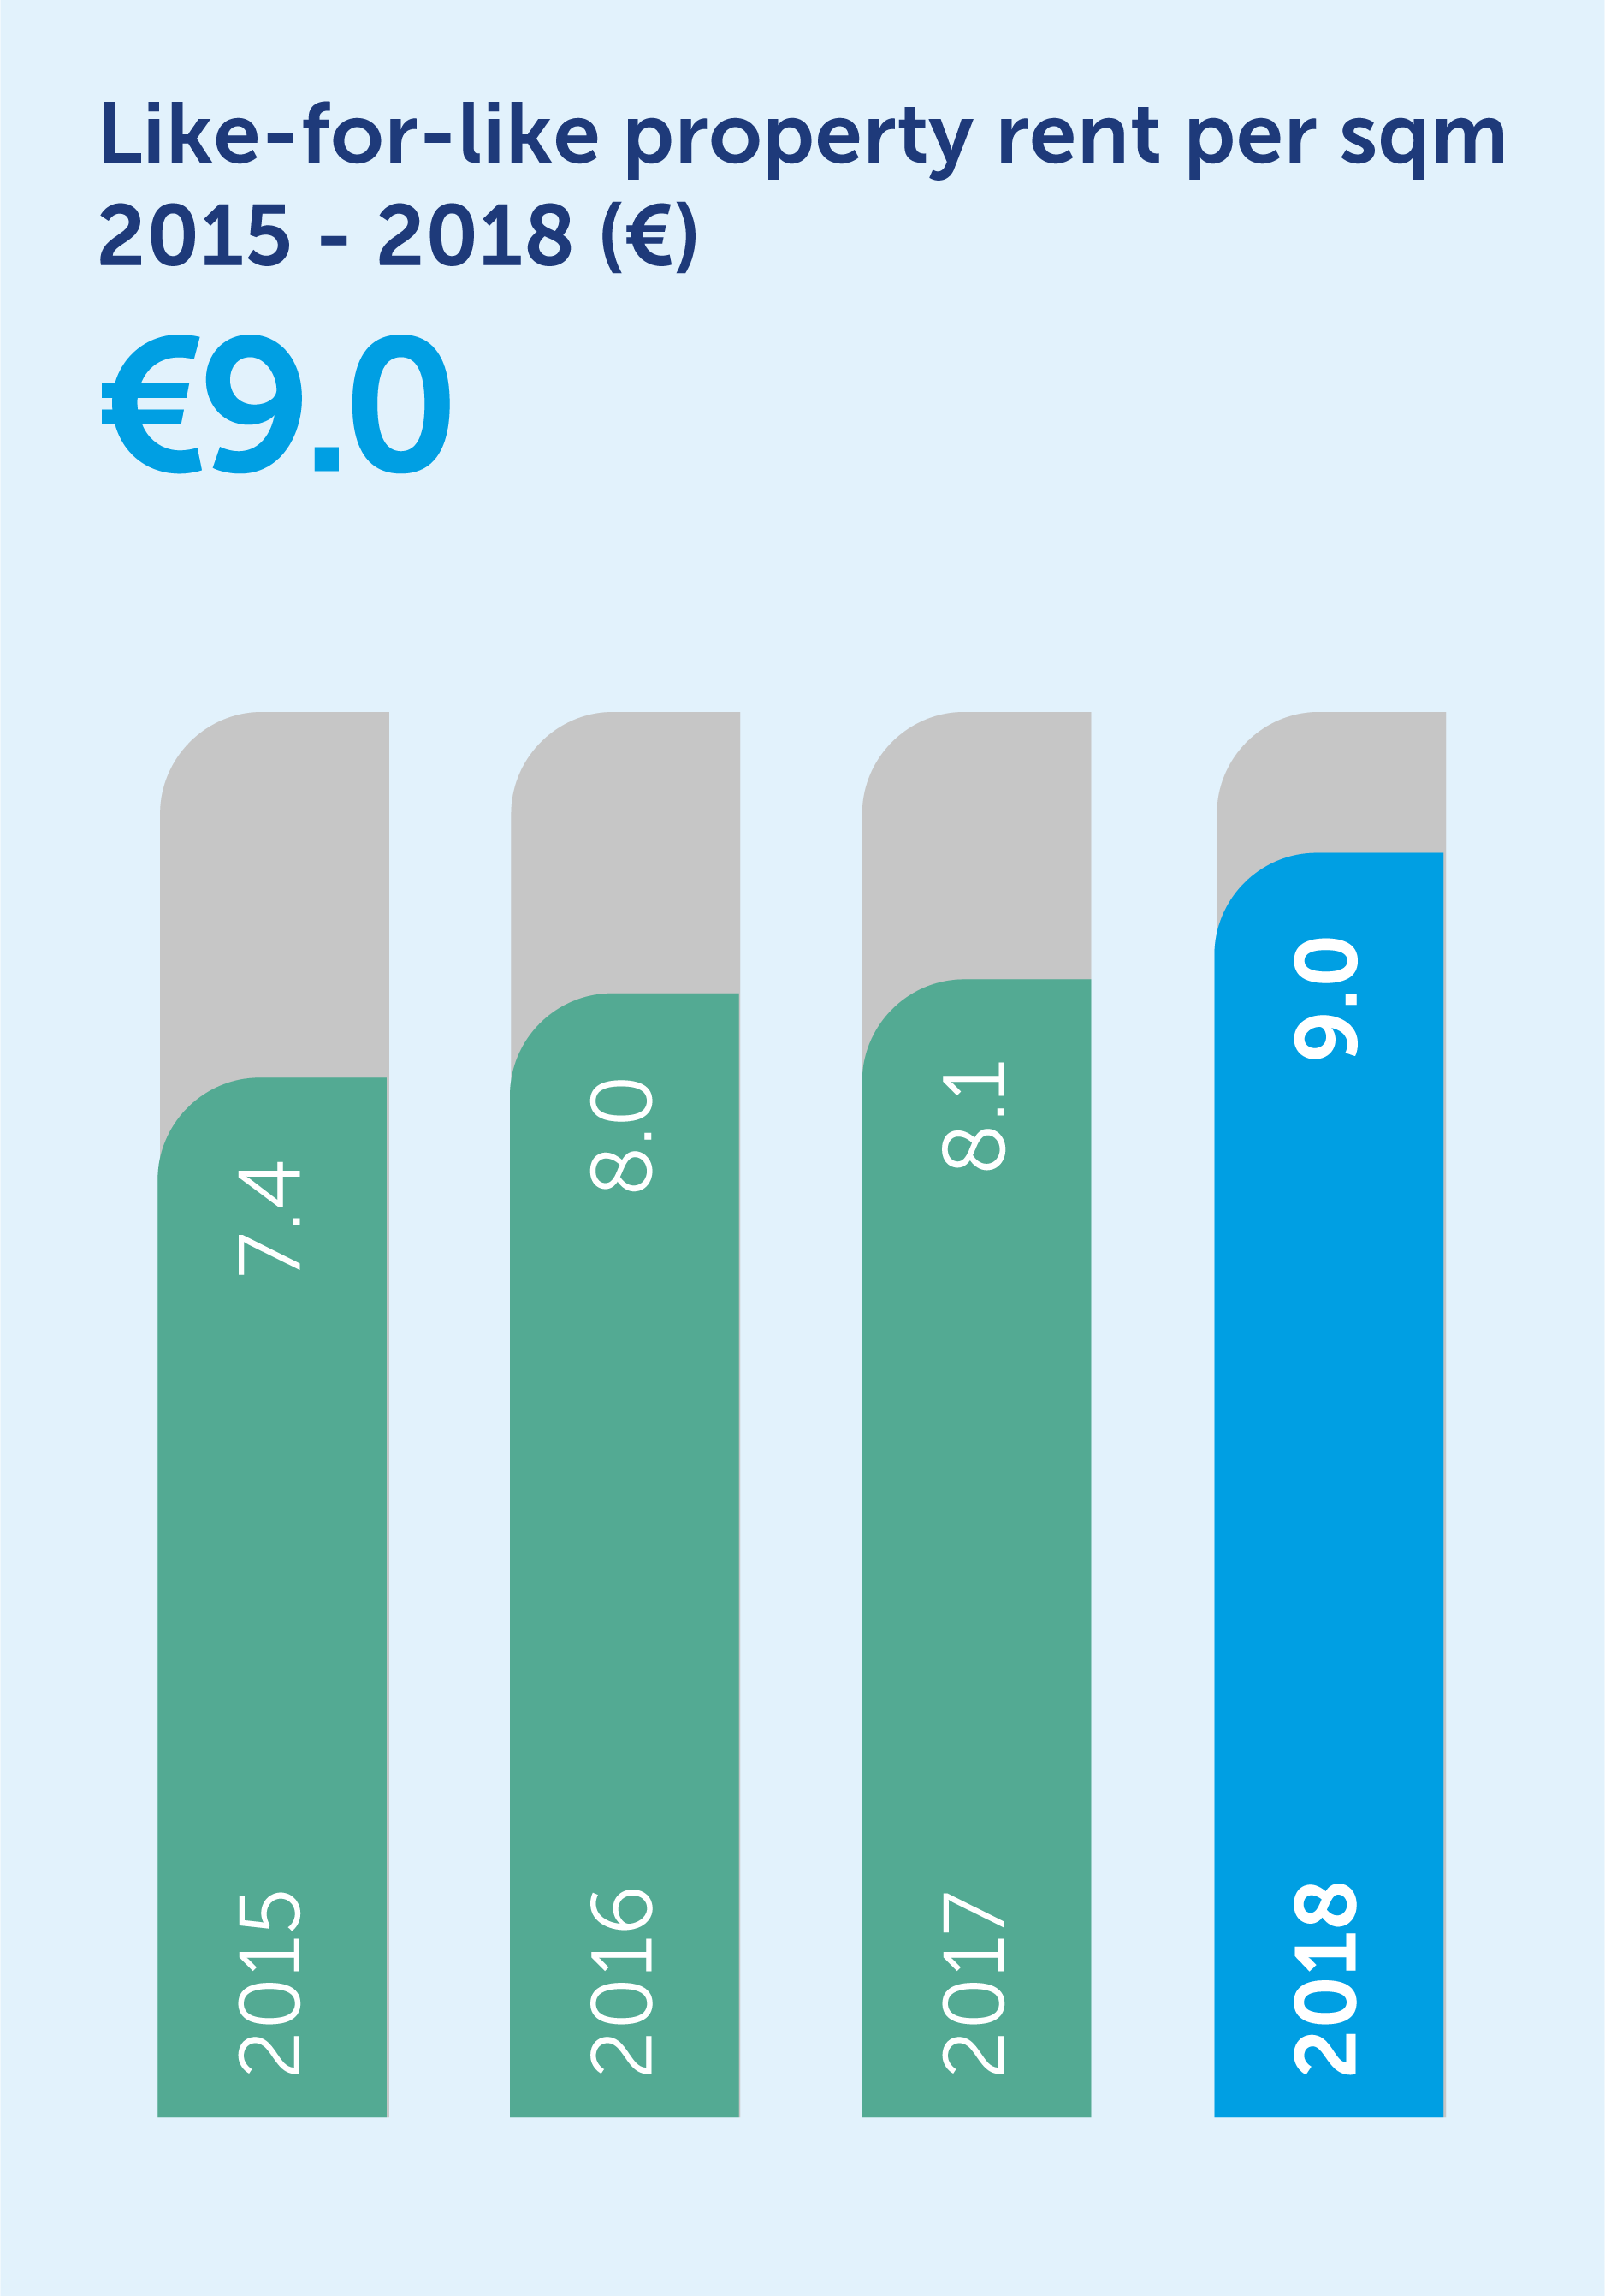 31862-like-for-like-property-rent_bar-chart (1).png